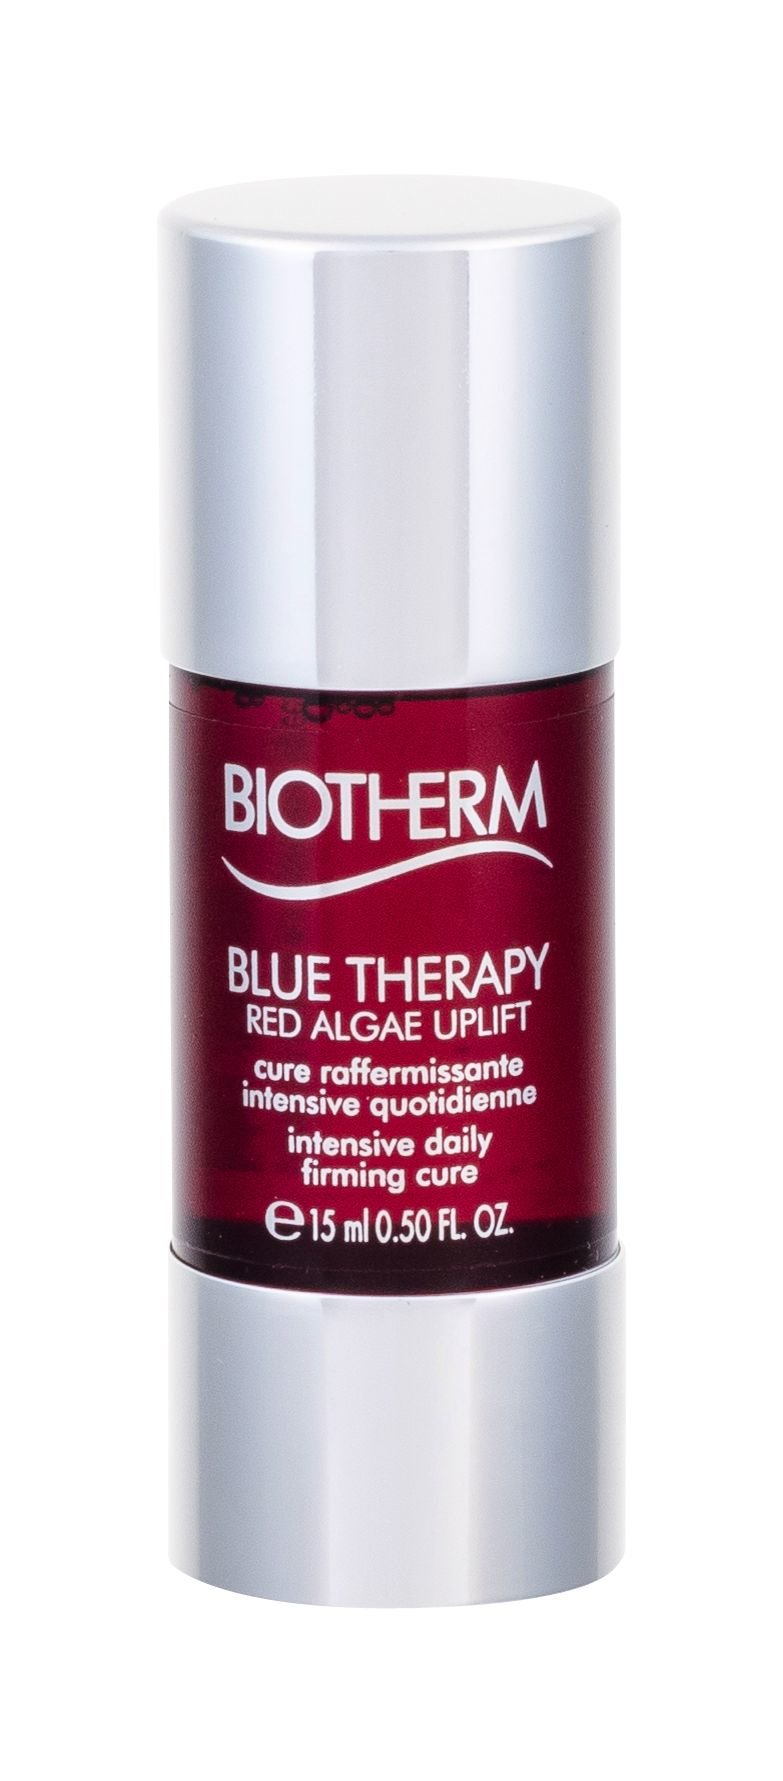 Biotherm Blue Therapy Skin Serum 15ml  Red Algae Uplift